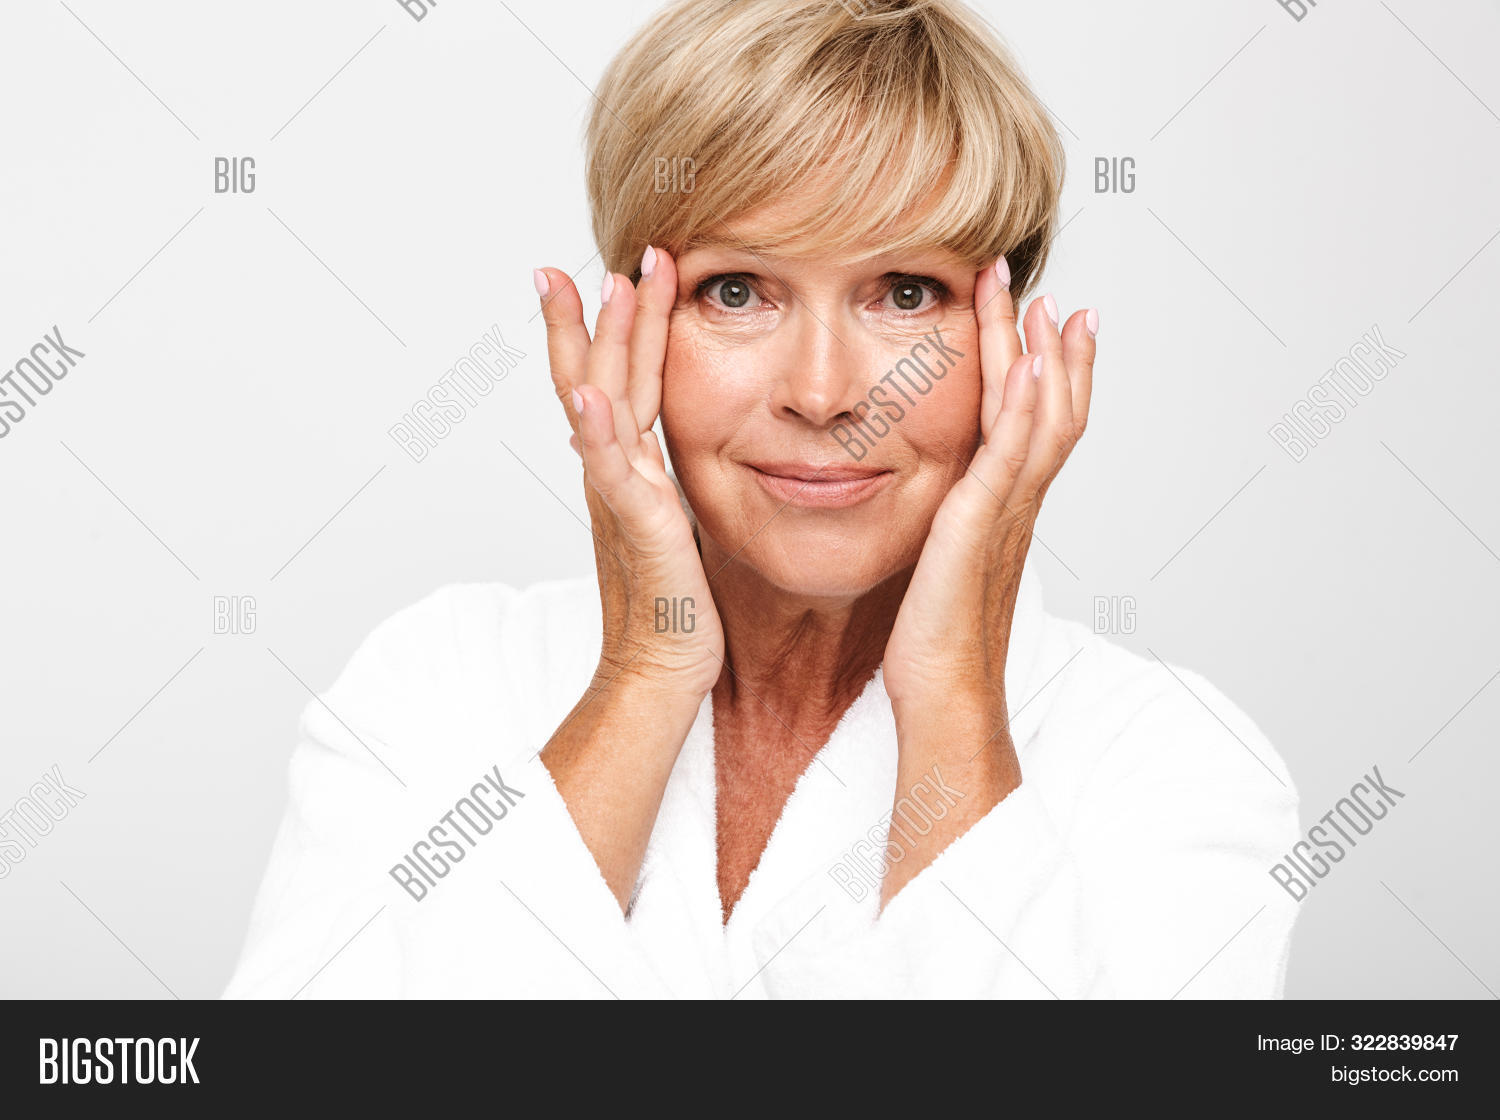 Image of attractive adult woman with short blond hair wearing white housecoat touching her face isol